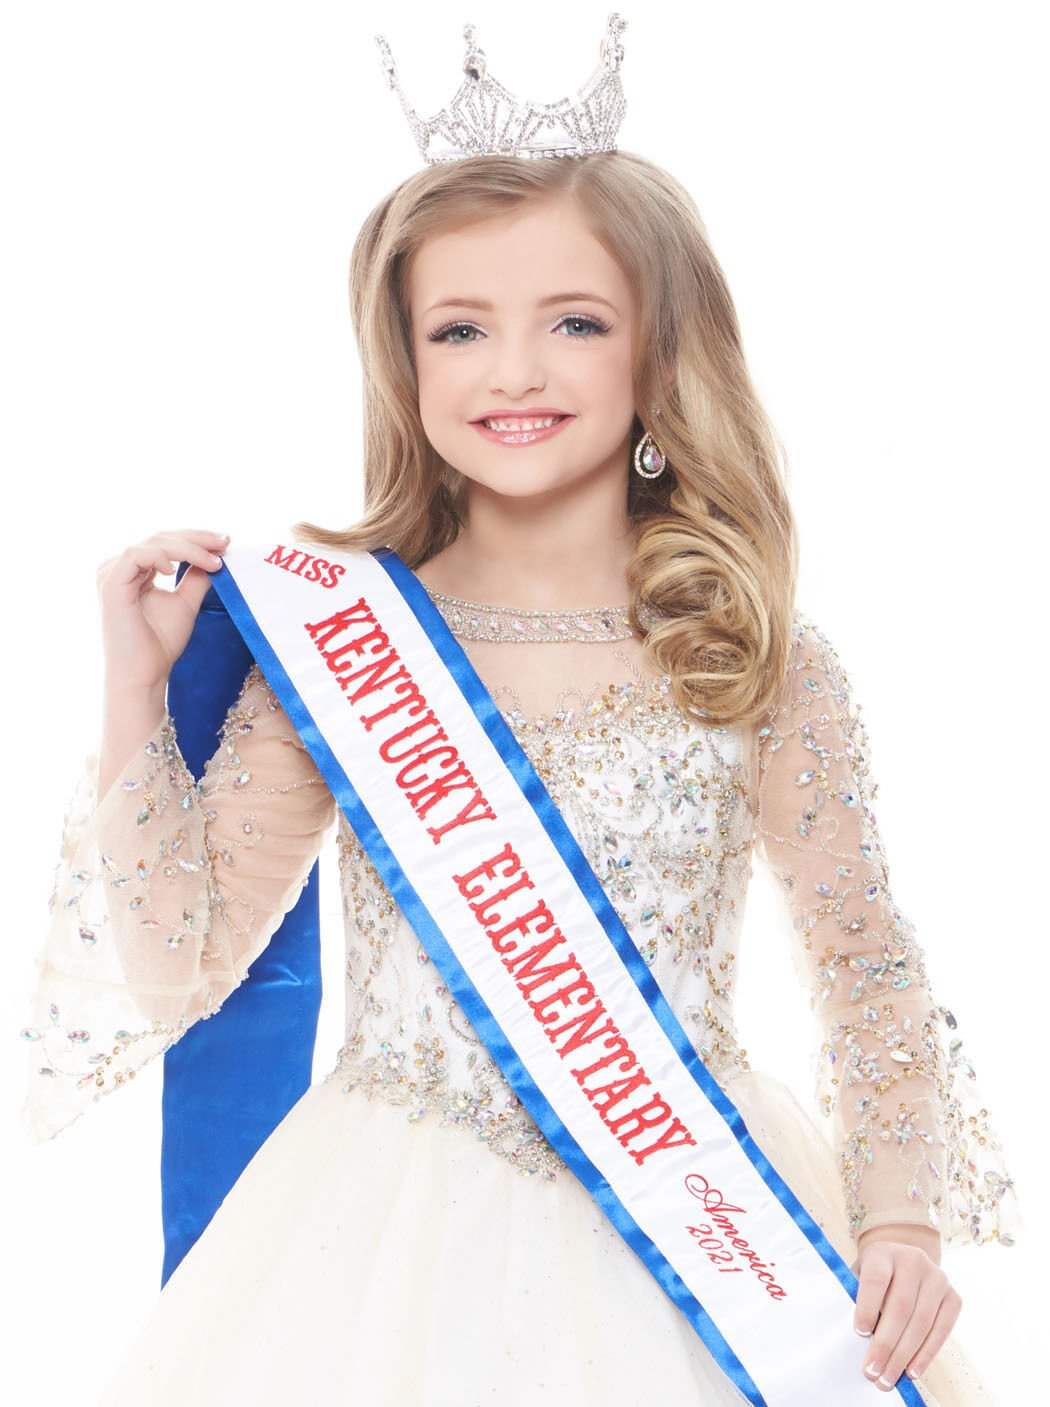 Pageantry and service go hand-in-hand for E'town girl